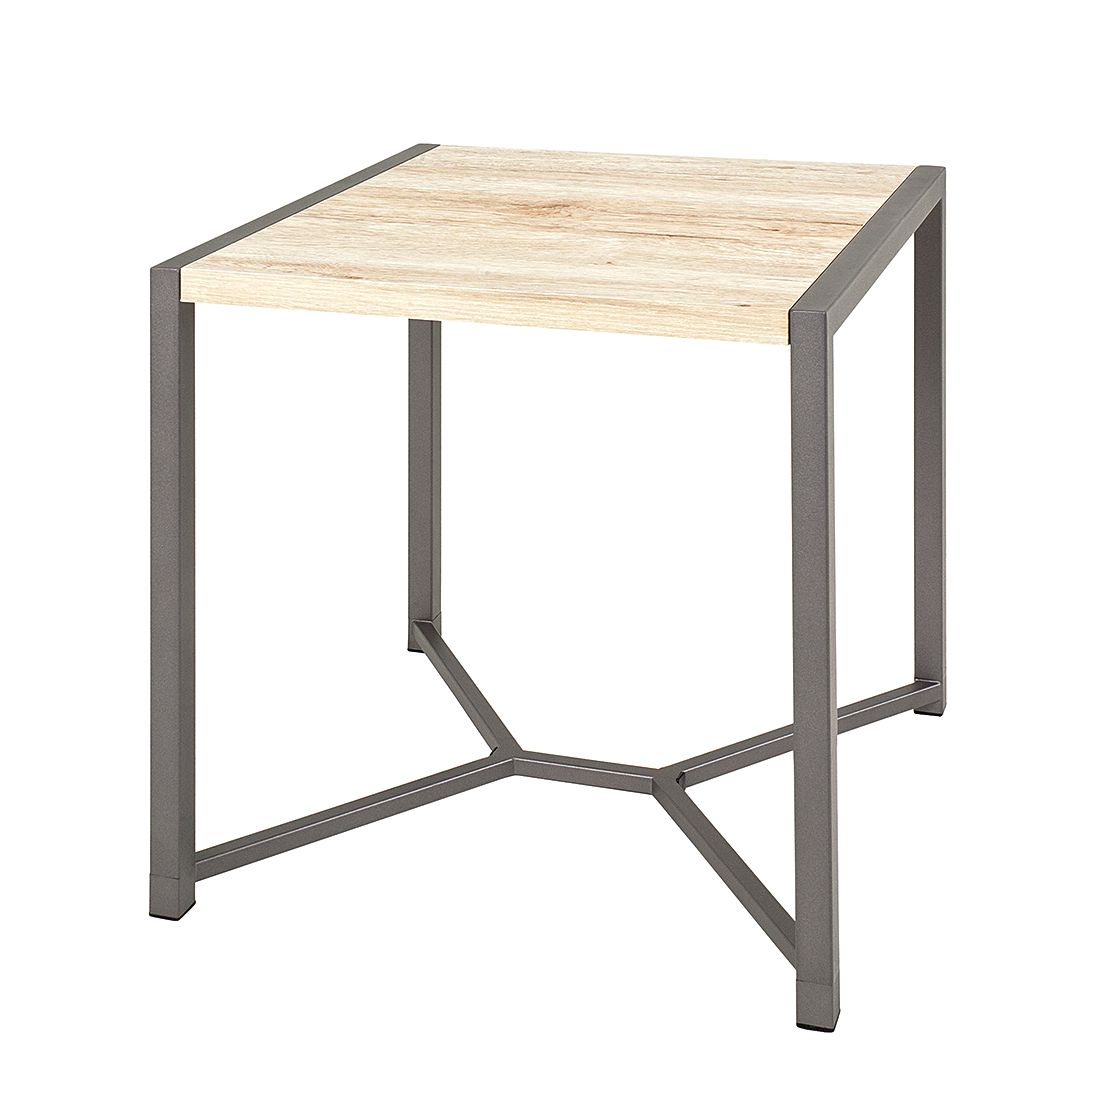 Table d'appoint Tammy II - Imitation chêne de San Remo / Anthracite, Home Design